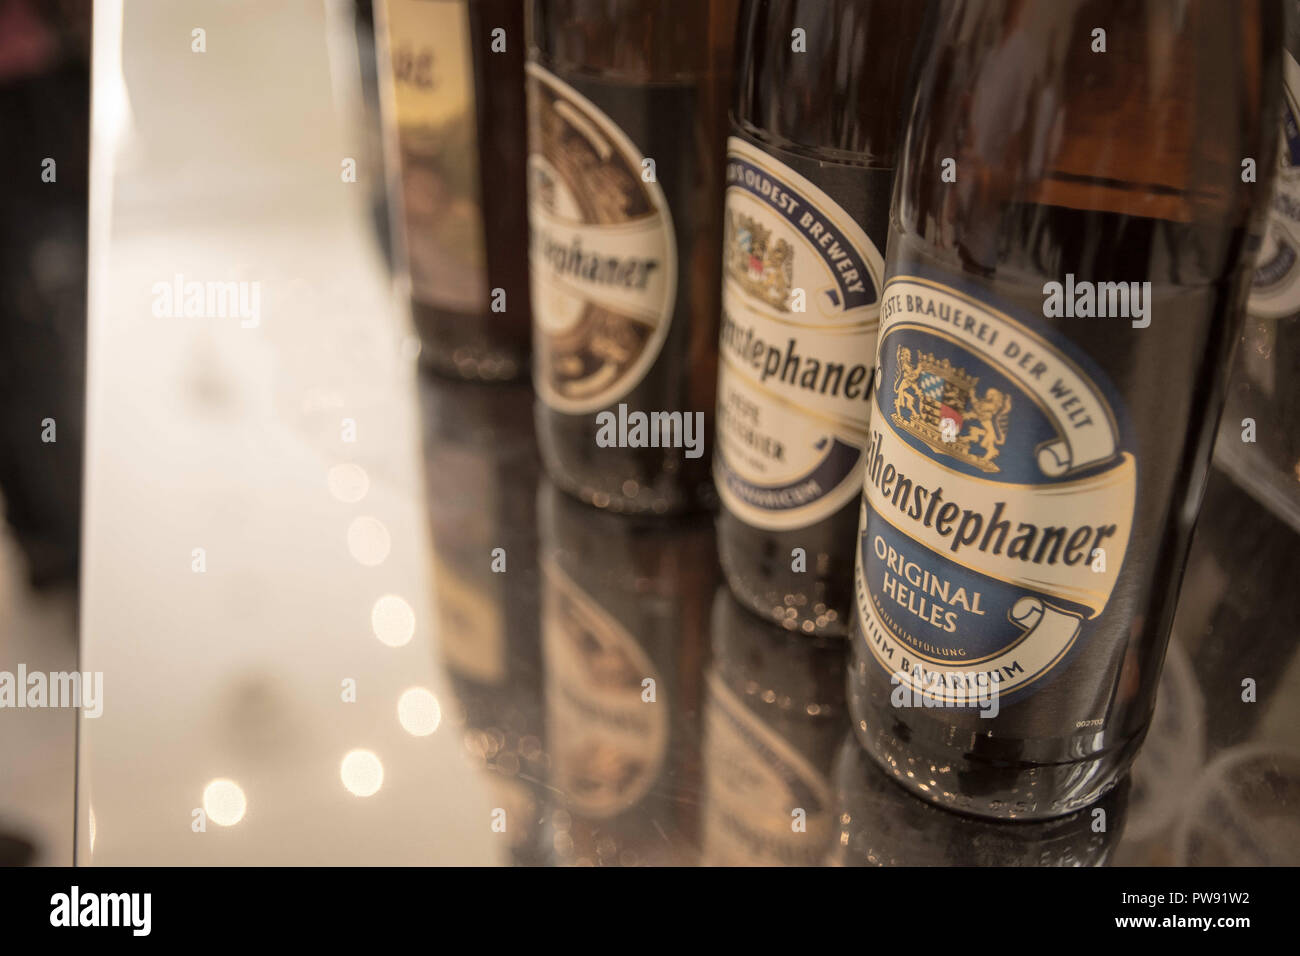 Athens, Greece. 13th Oct, 2018. Bottles of beer seen ready to be tasted during the exhibition.The 5th Zythognosia Exhibition, people get a chance during the exhibition to taste multiple brews and premium beers from different brands and companies like Levante for Zante Lager, Asylum for Asylum saison, Mikonu for Mikonu Pale Ale, Deals for Fischer, Samichlaus and Cava di patsi for Flaros Session Ale in Zappeion Megaron in Athens. Credit: Nikolas Joao Kokovlis/SOPA Images/ZUMA Wire/Alamy Live News - Stock Image